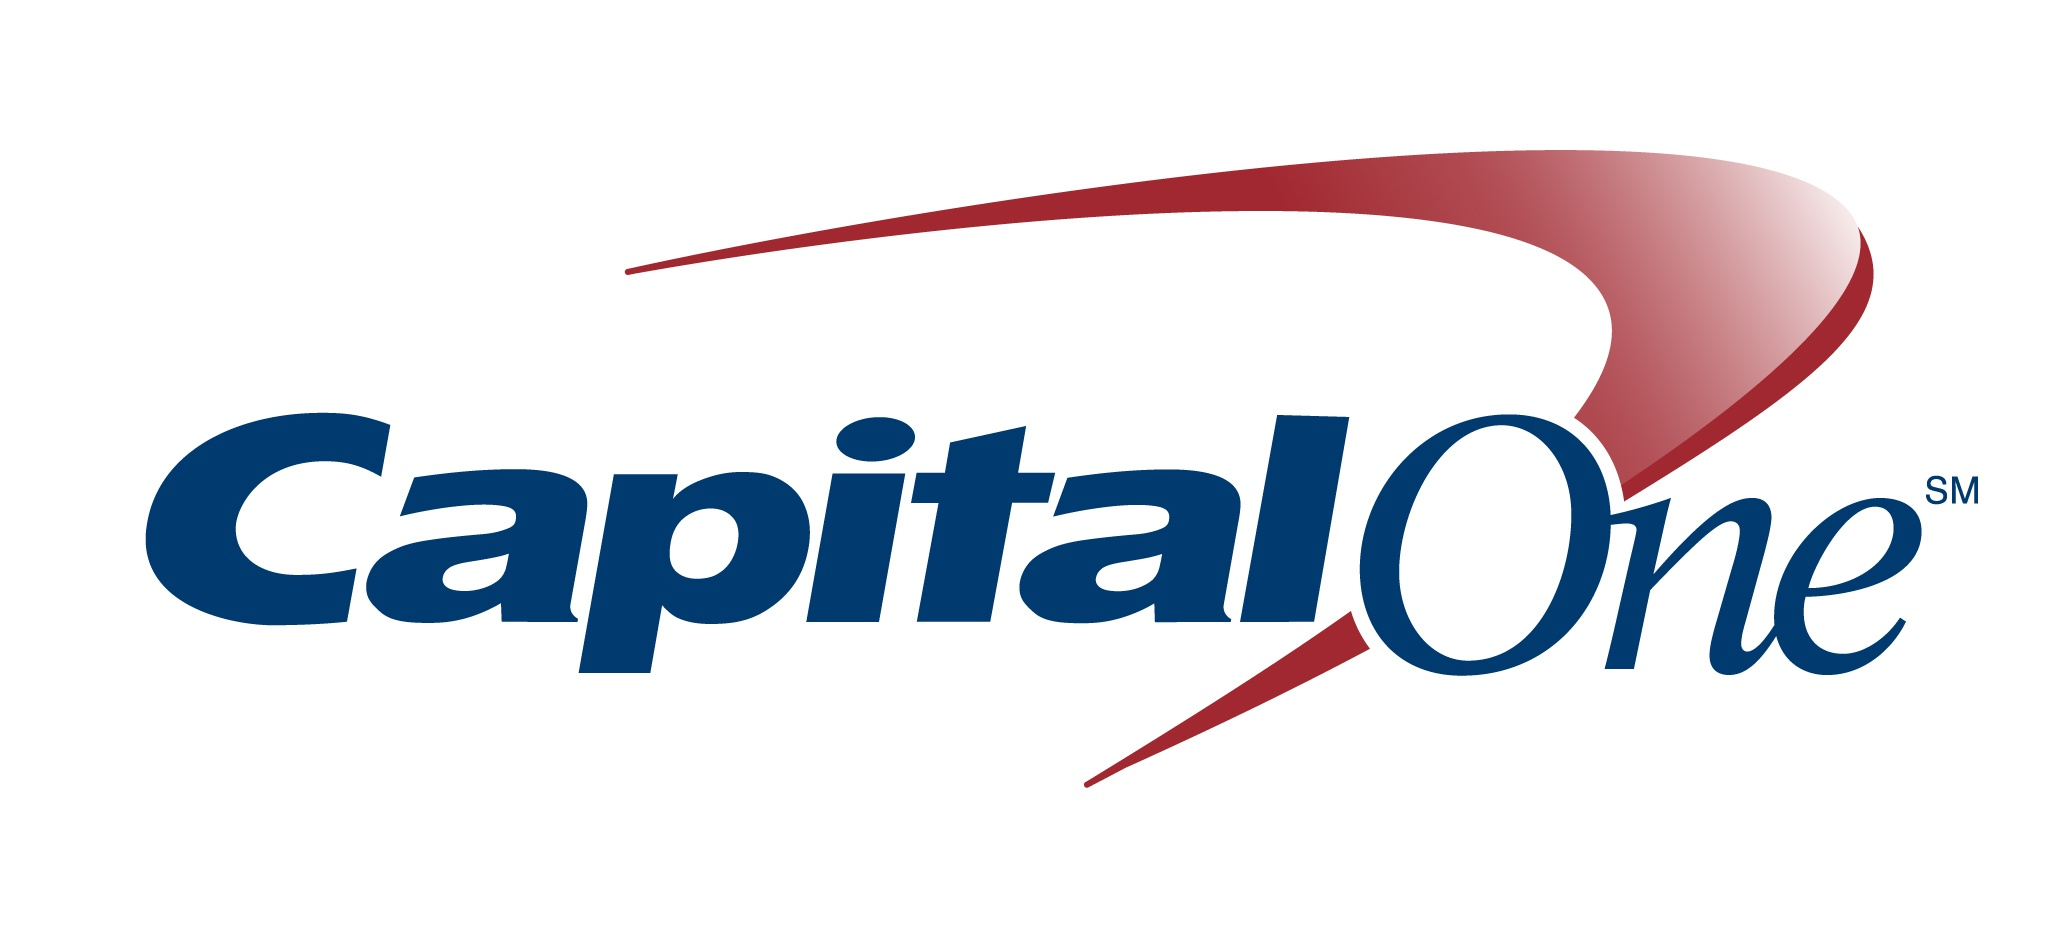 Count Me In And Capital One Host National Conference To Help Women Veteran Entrepreneurs Accelerate The Growth Of Their Small Businesses And Create New Jobs Business Wire